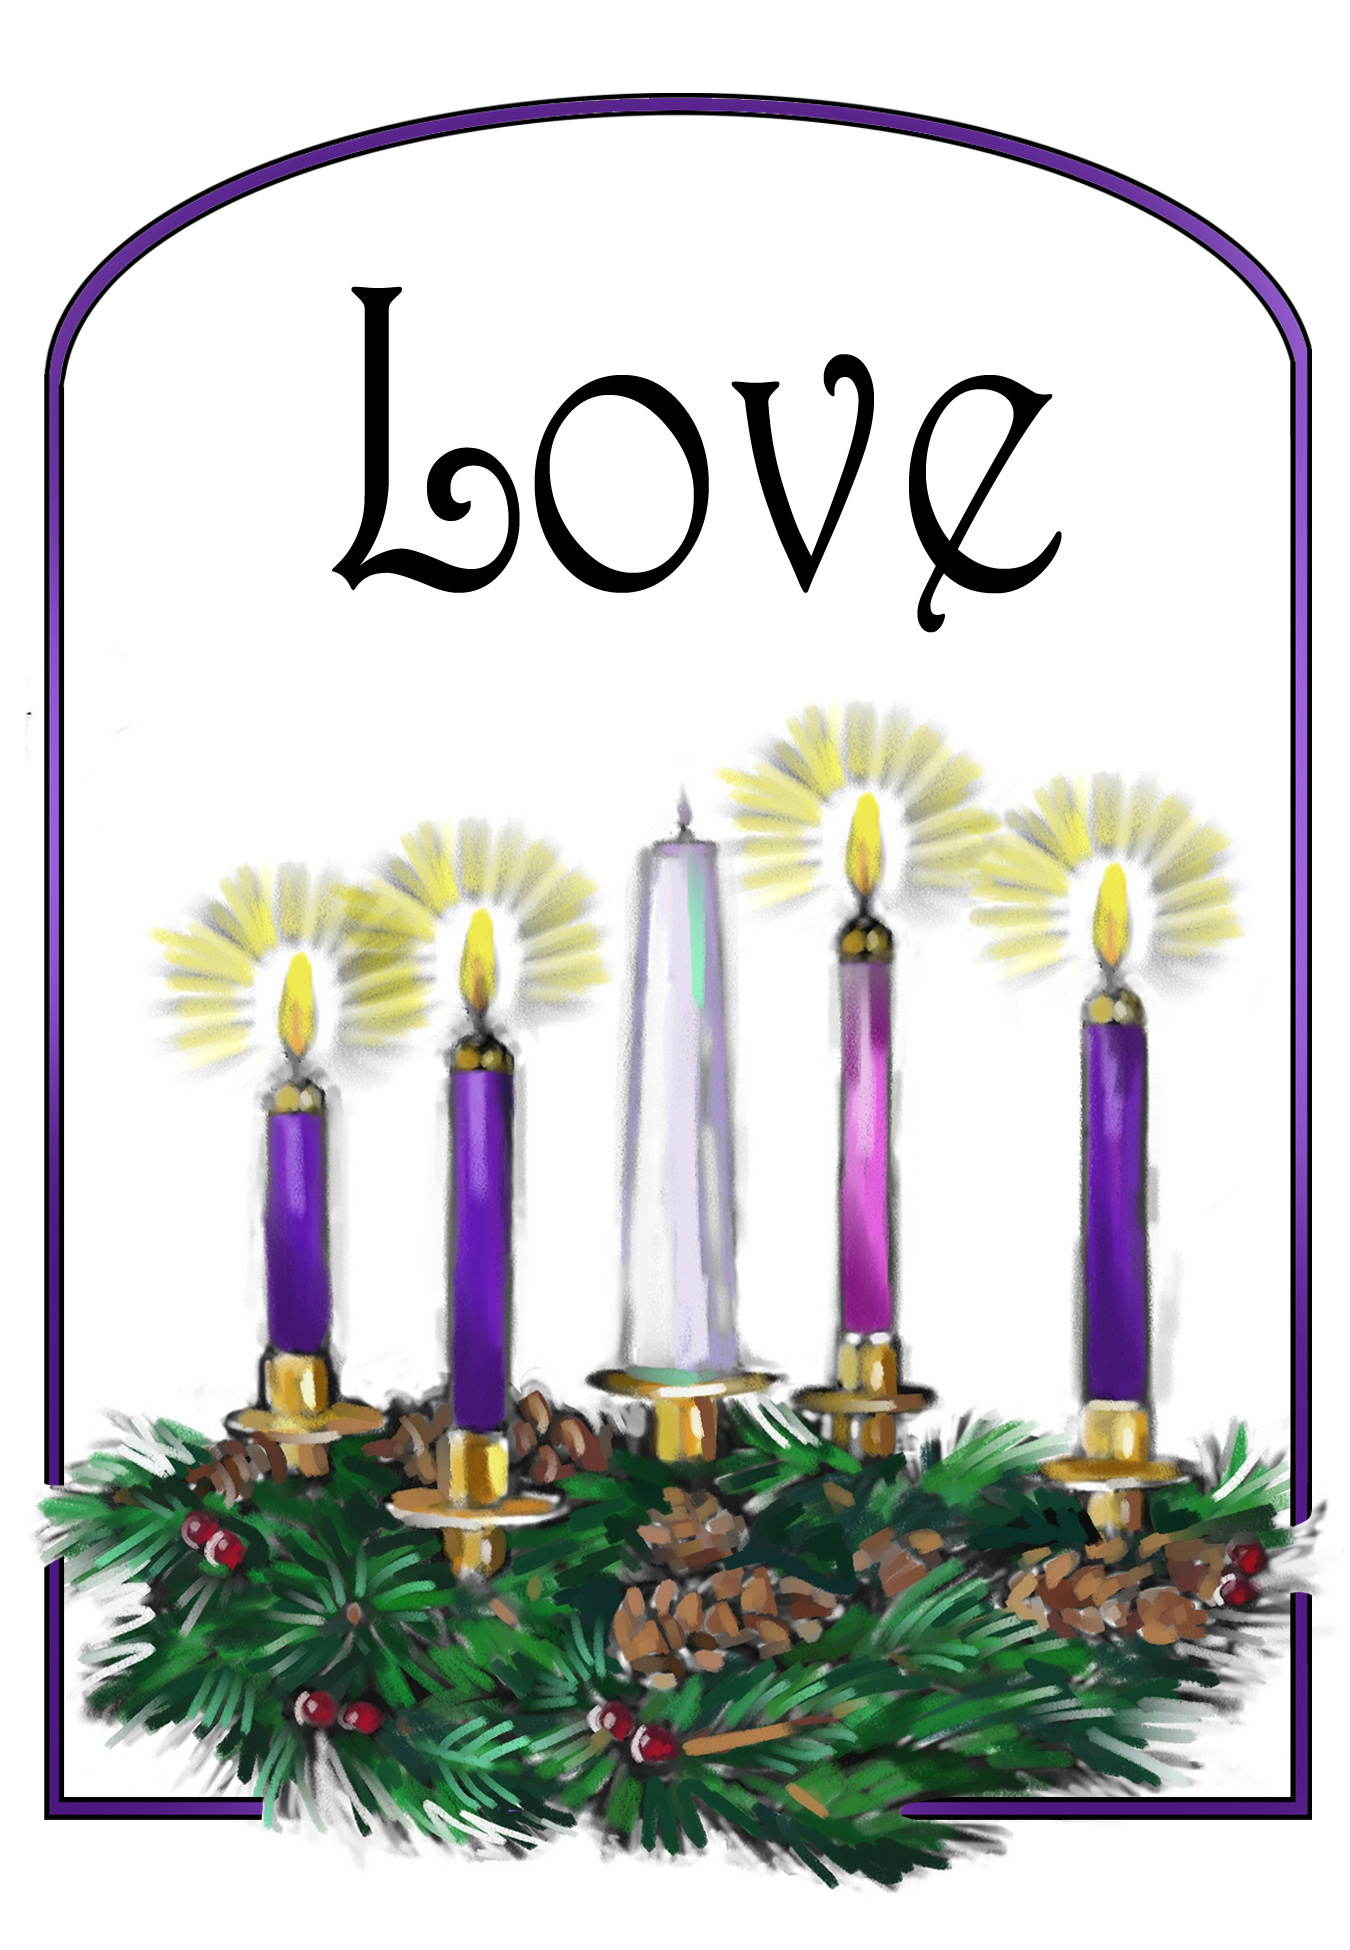 Advent season 2018 clipart image free stock Fourth Sunday in Advent – Presbytery of Cape Breton image free stock